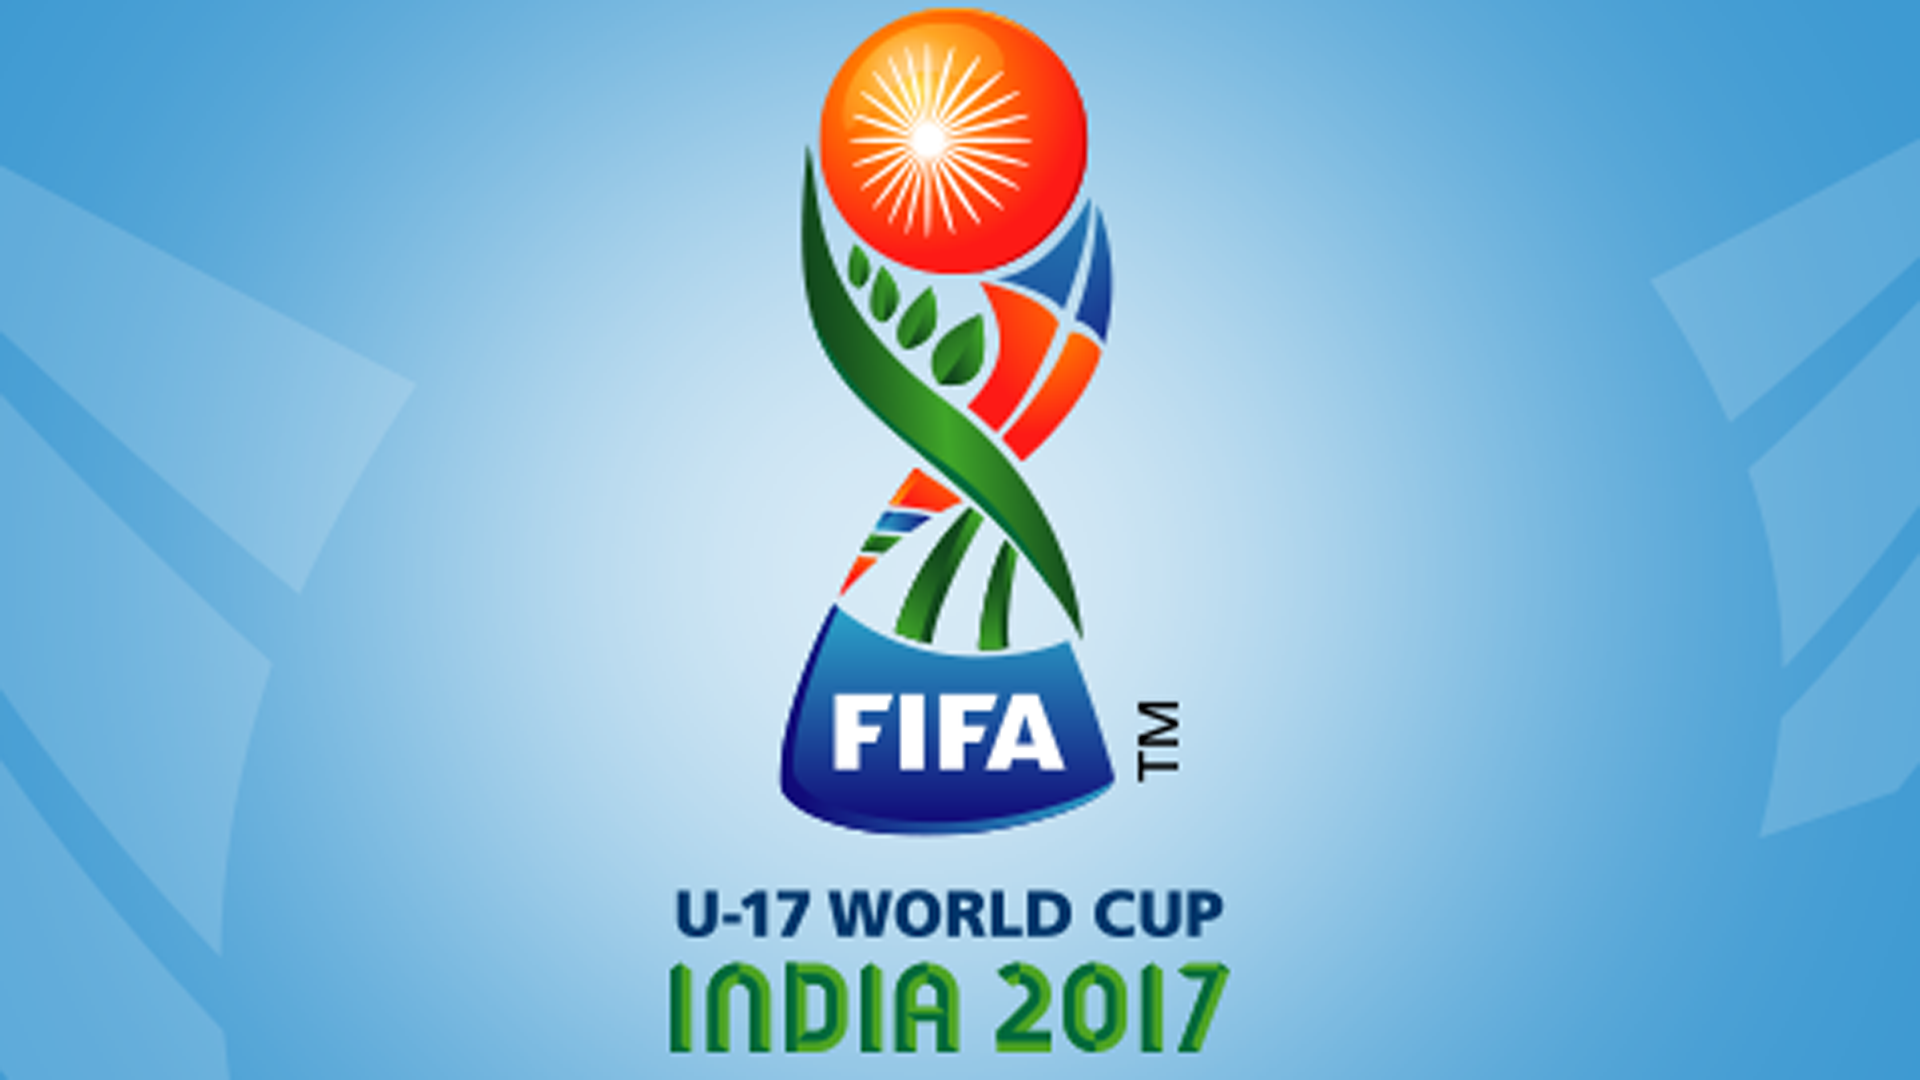 Kolkata to host the final